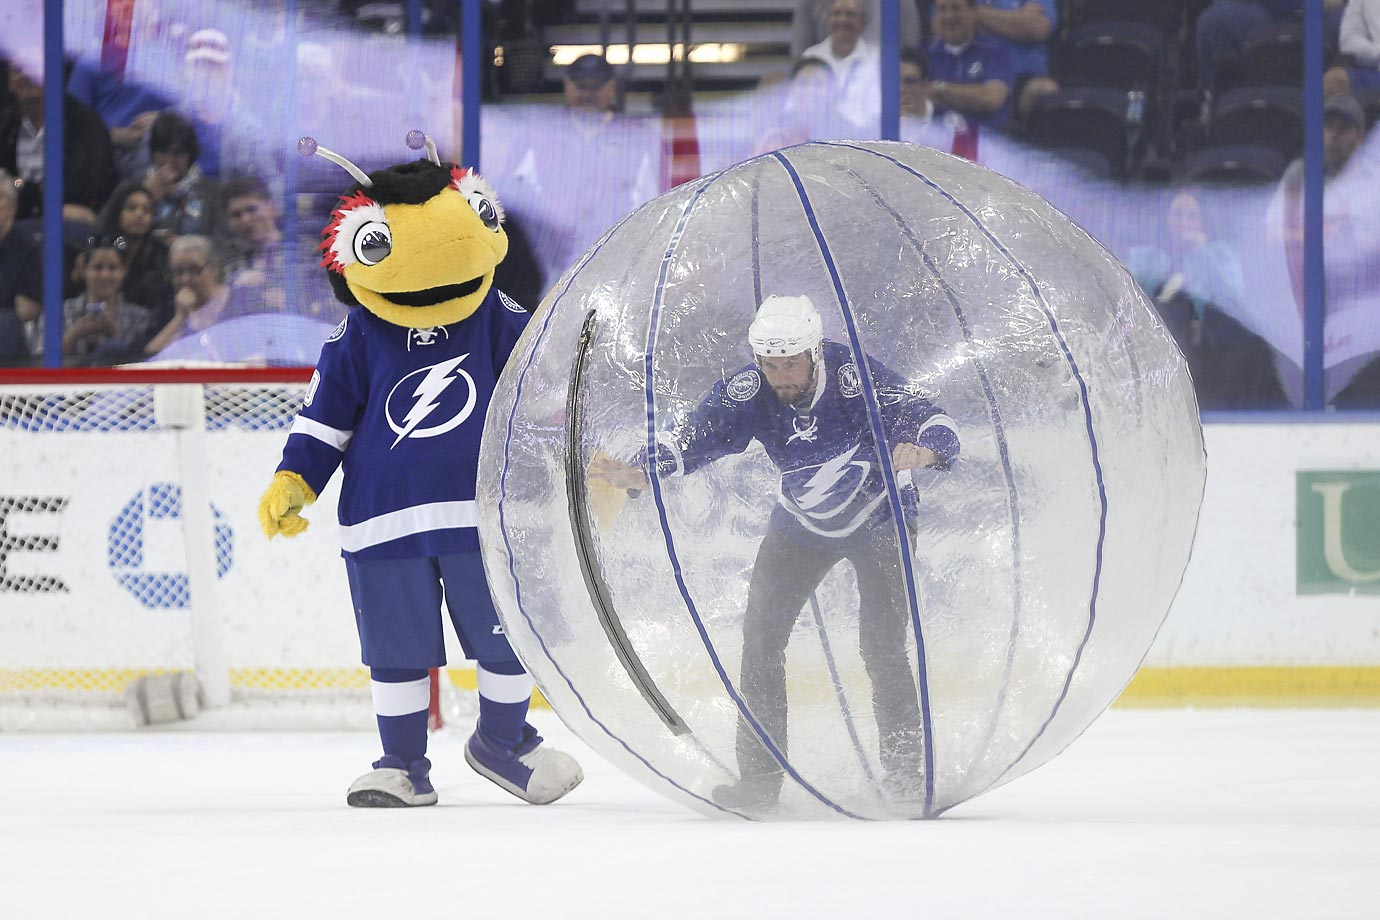 Thunder Bug, the Tampa Bay Lightning mascot, helps out a fan who is participating in a human hamster race during a game against the Nashville Predators.